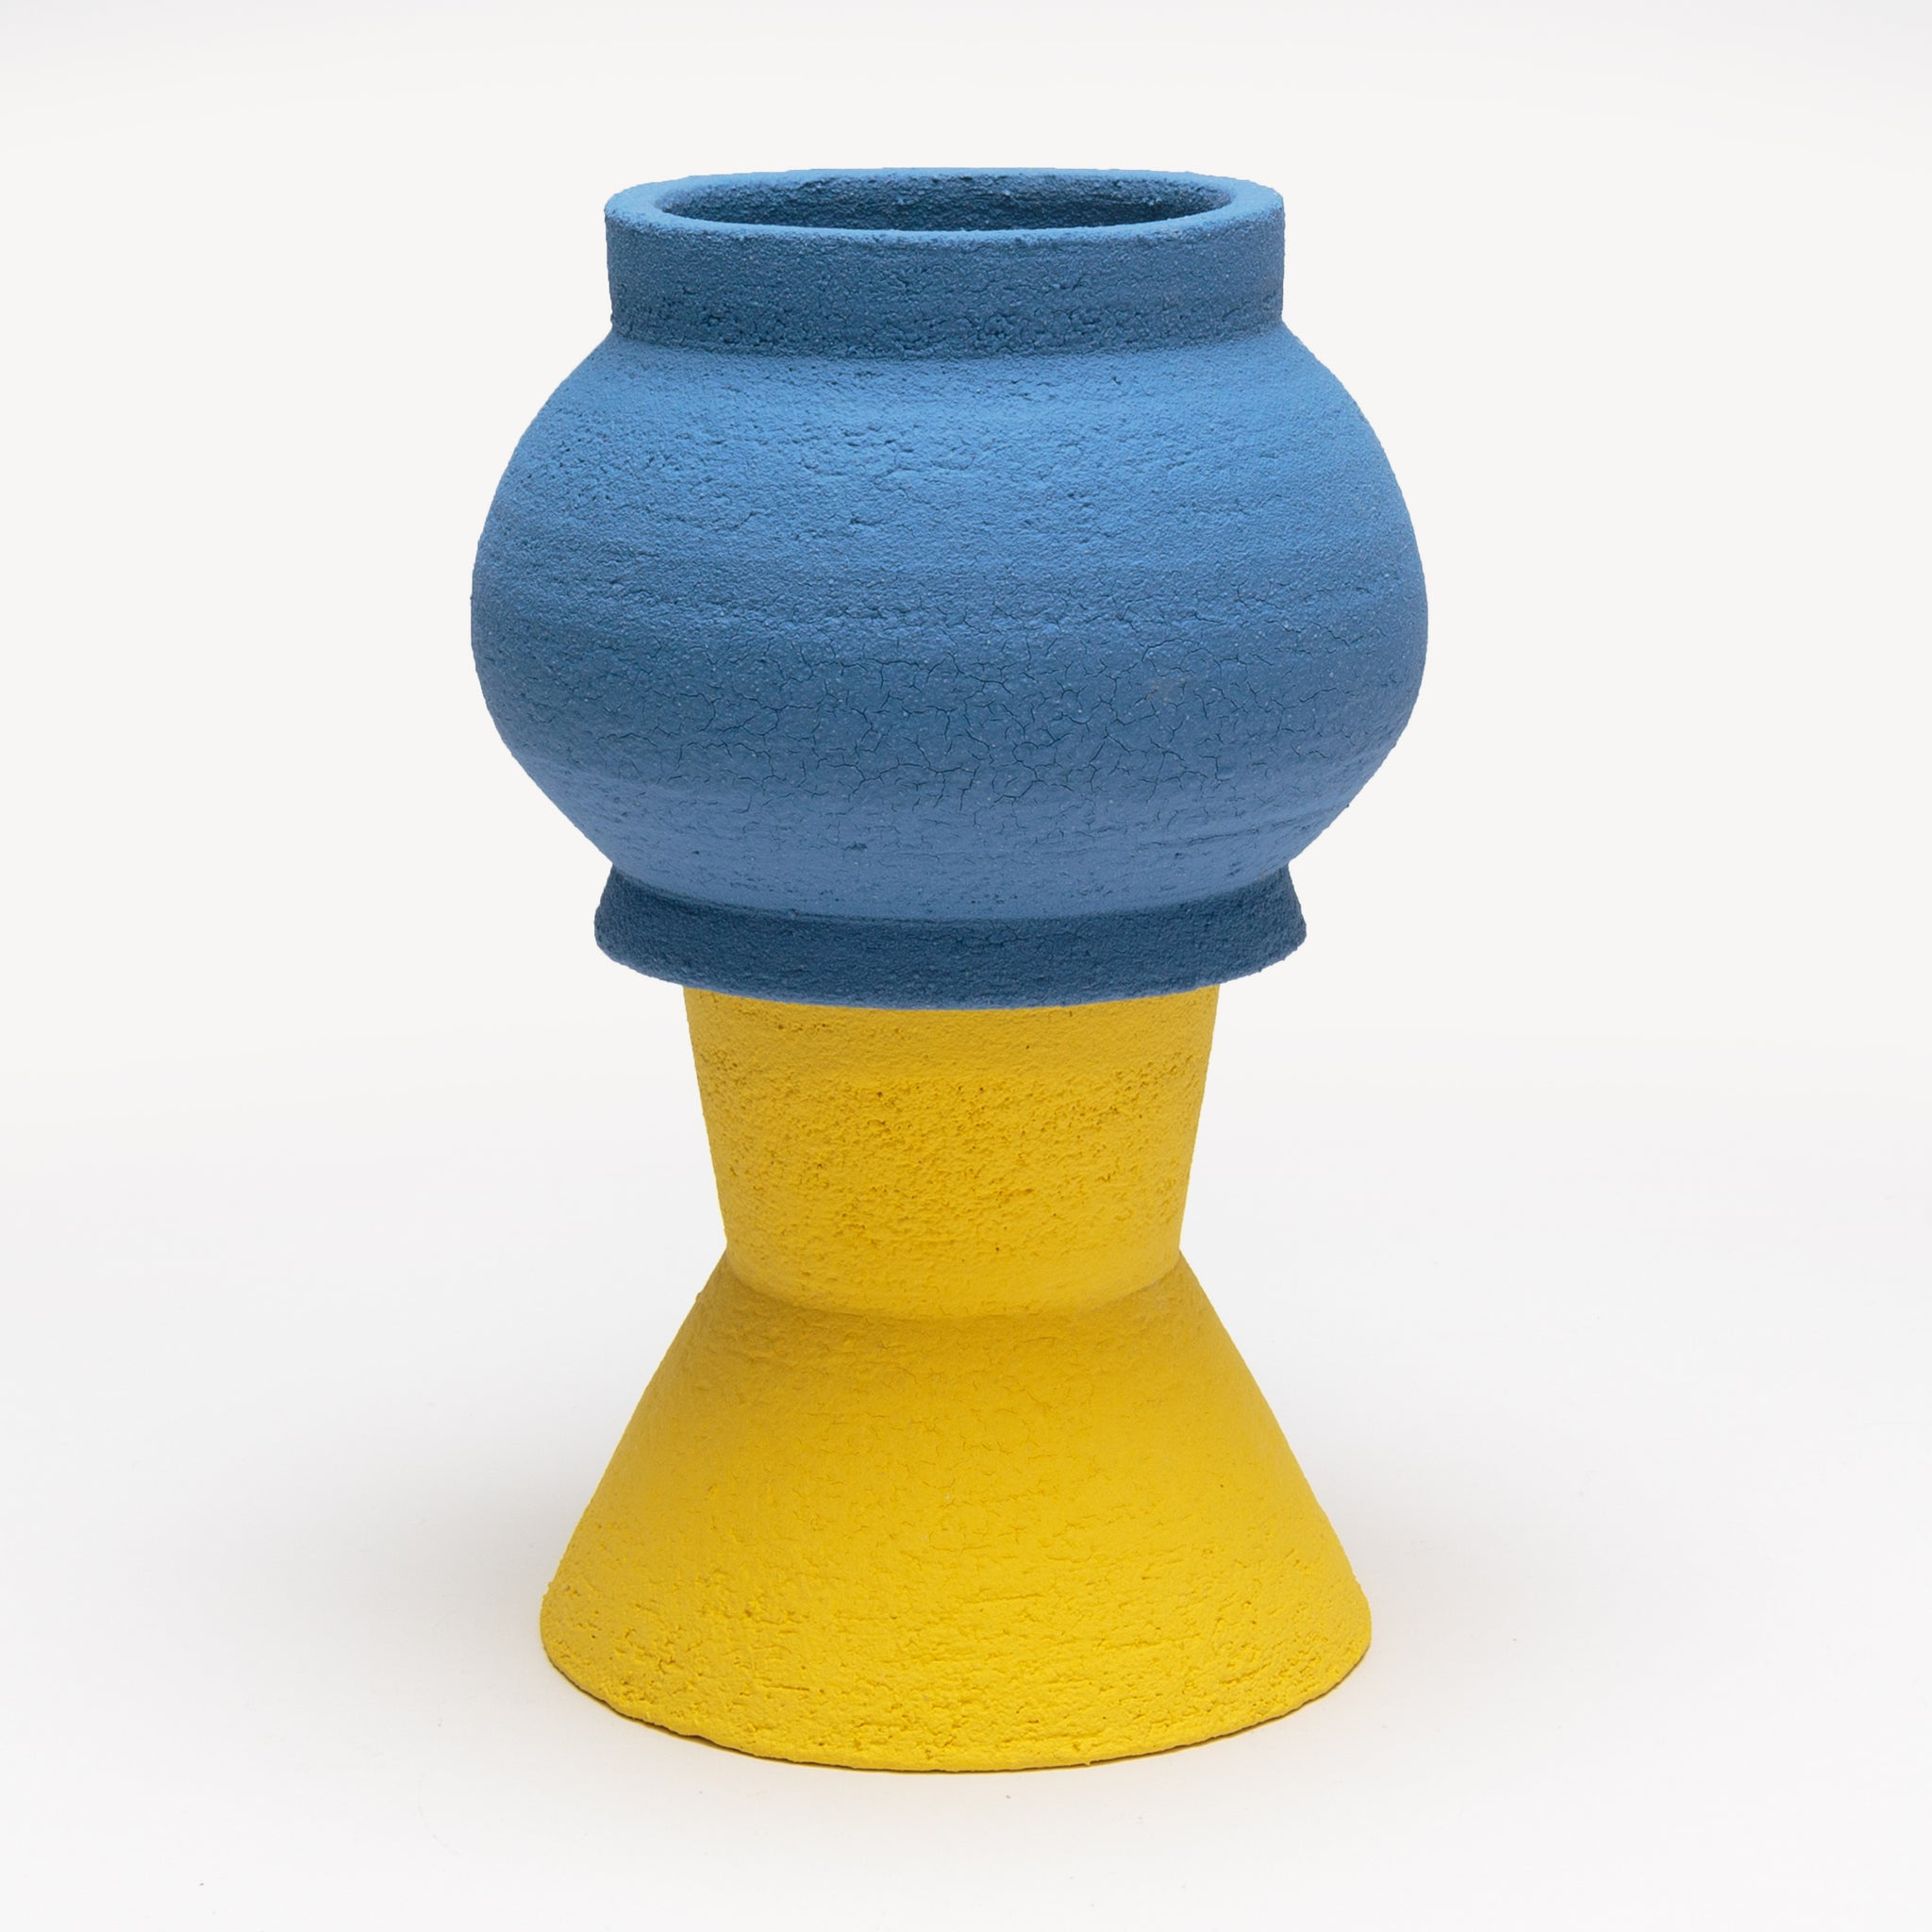 Two-Part Plant Pot in Yellow and Blue